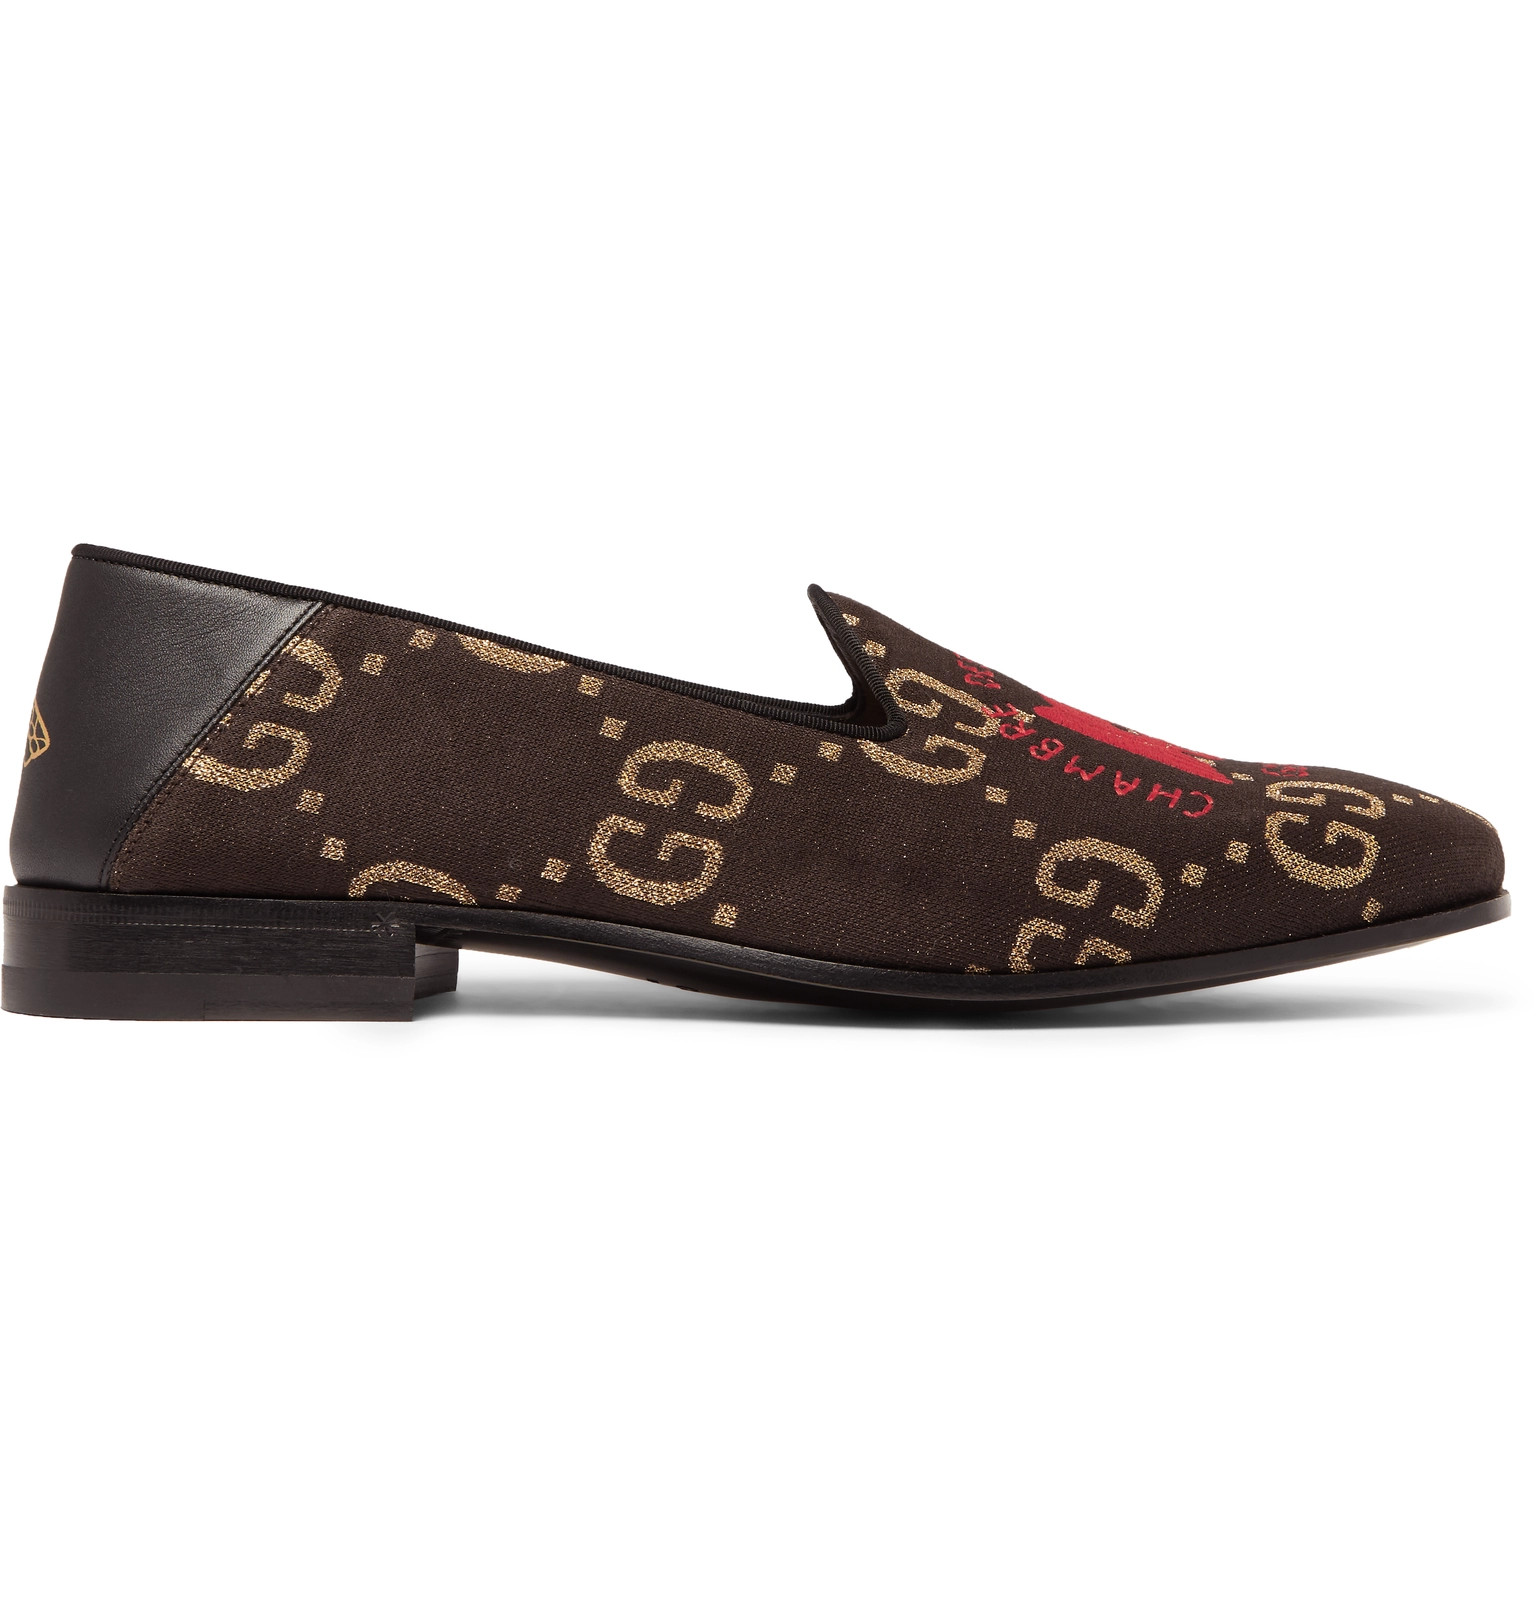 bd5a79caef2 GucciGallipoli Collapsible-Heel Leather-Trimmed Embroidered Metallic  Jacquard Loafers